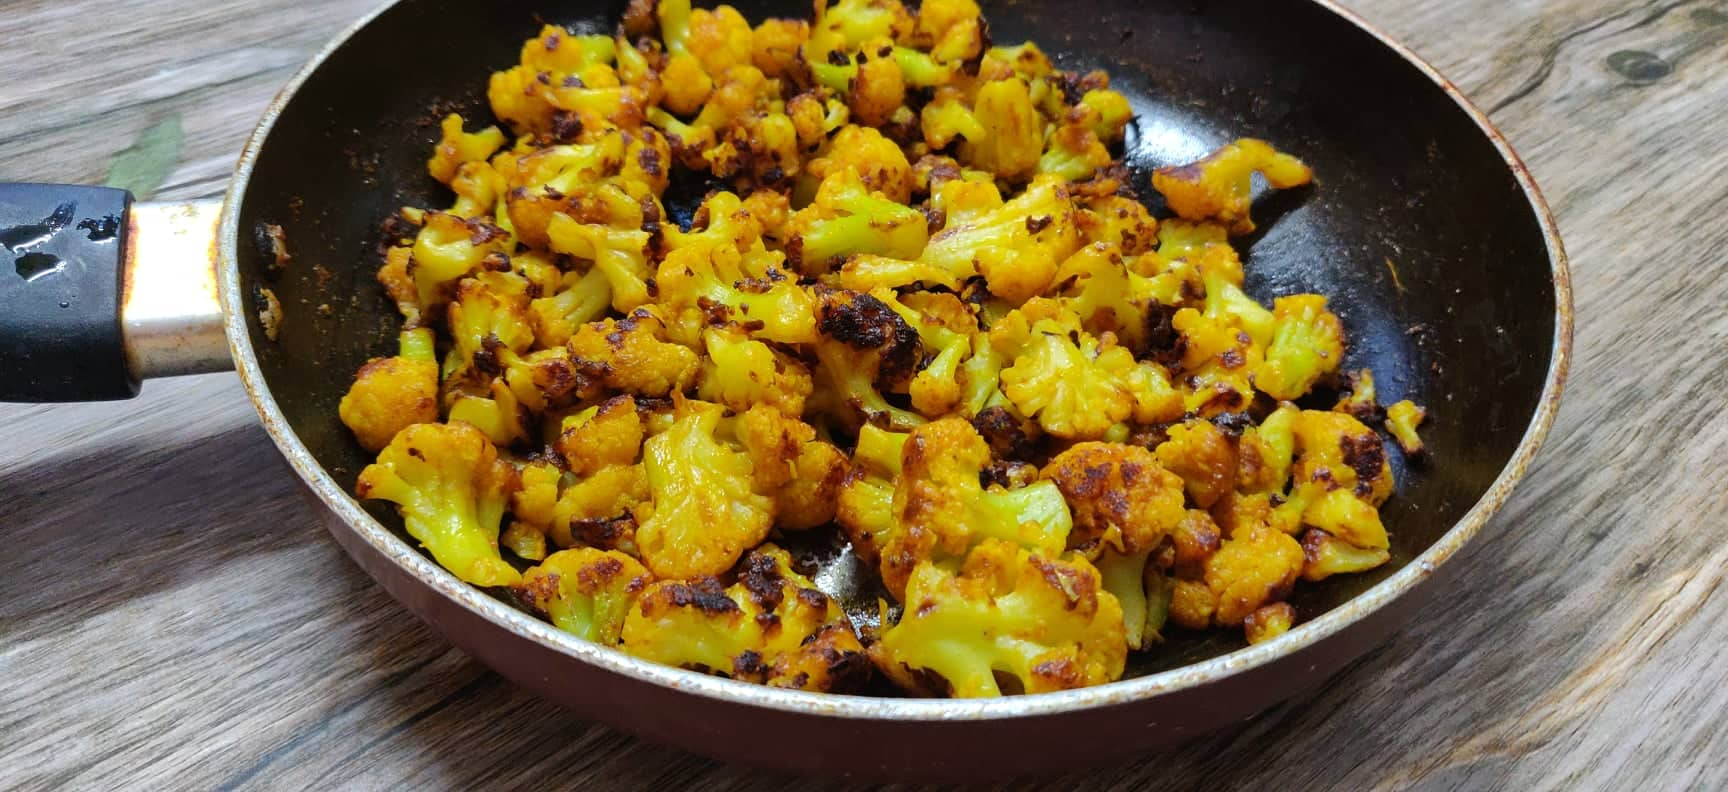 cauliflower_stir_fry - 84347694_179560983263821_2666906783640977408_n